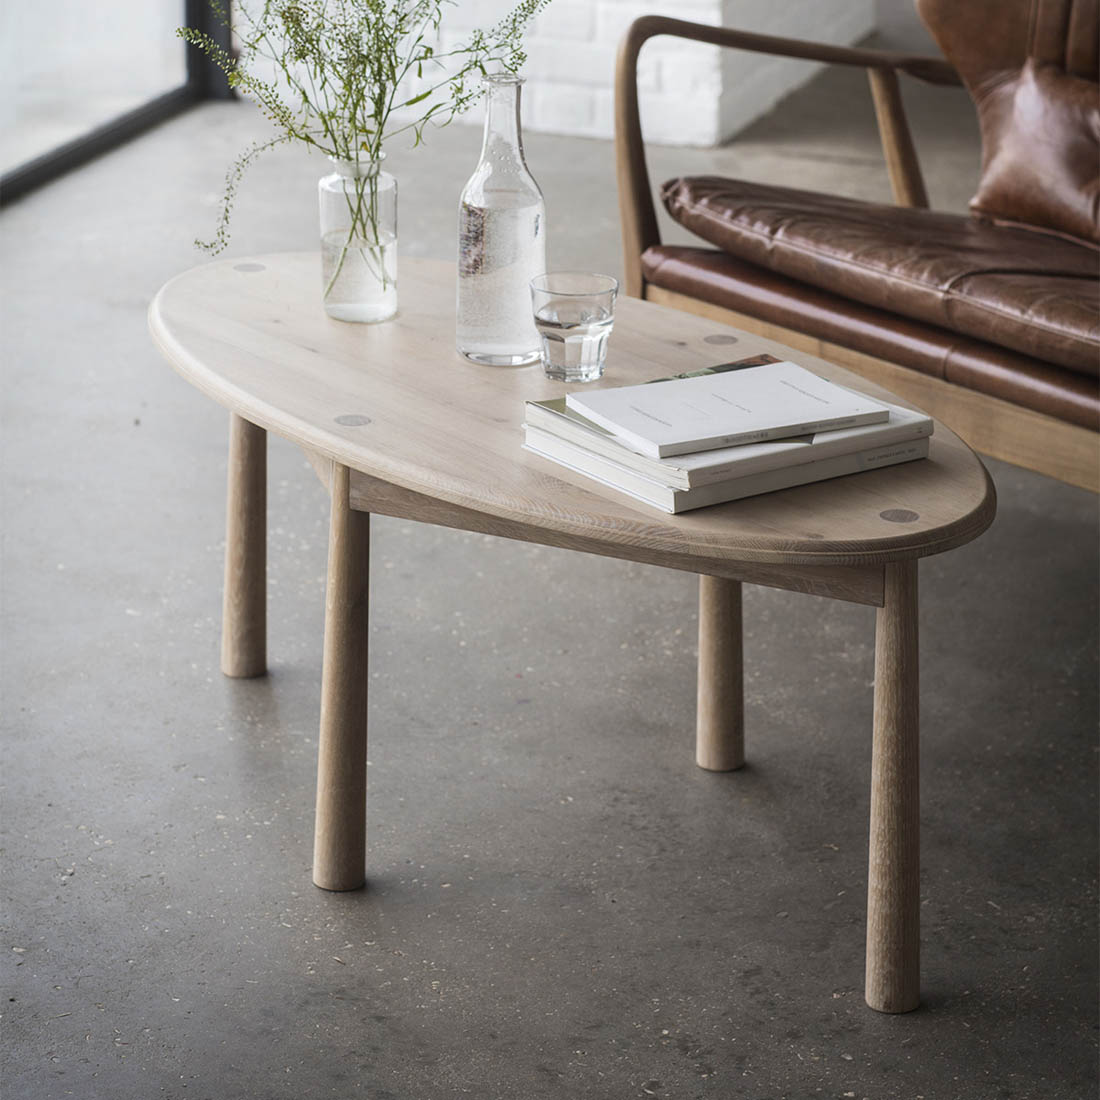 Lola Coffee Table With Storage: Affordable Scandi Style With Harley And Lola